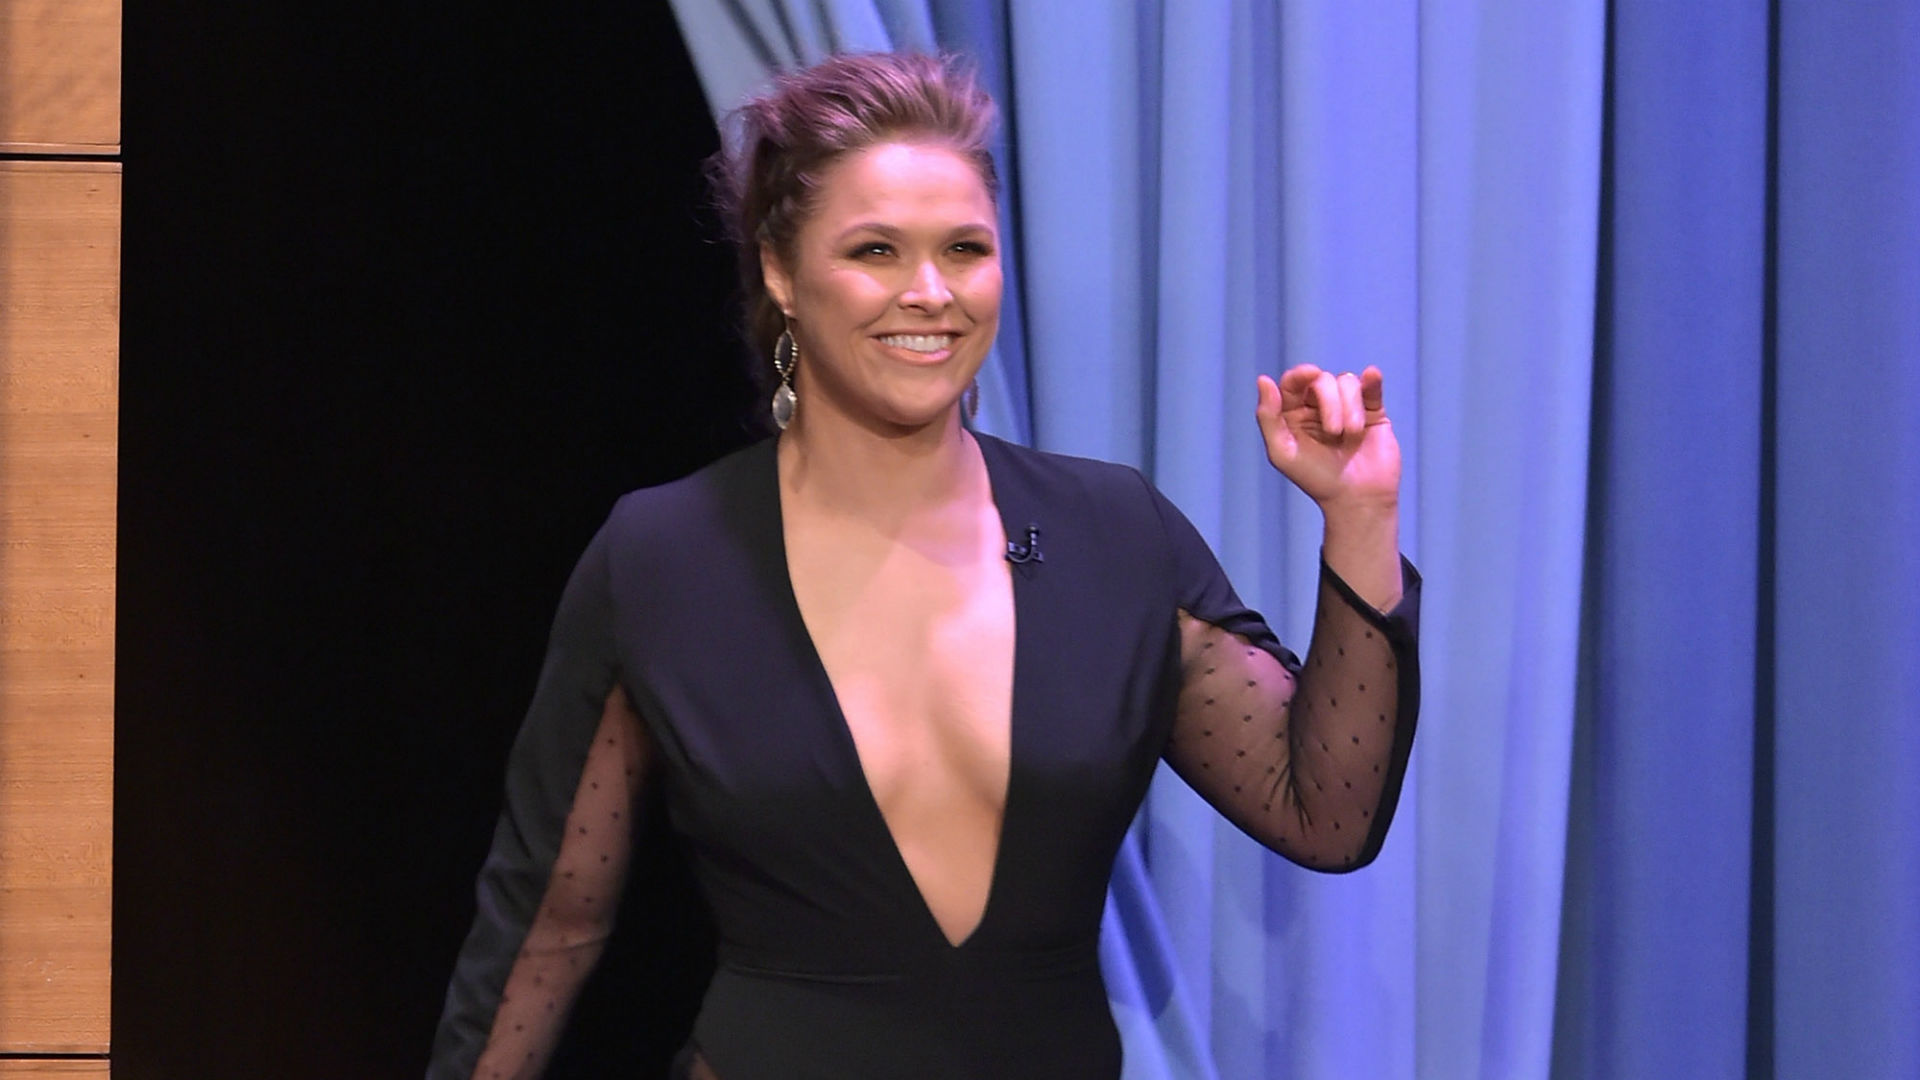 Ronda Rousey sex advice: She hates it when guys do this